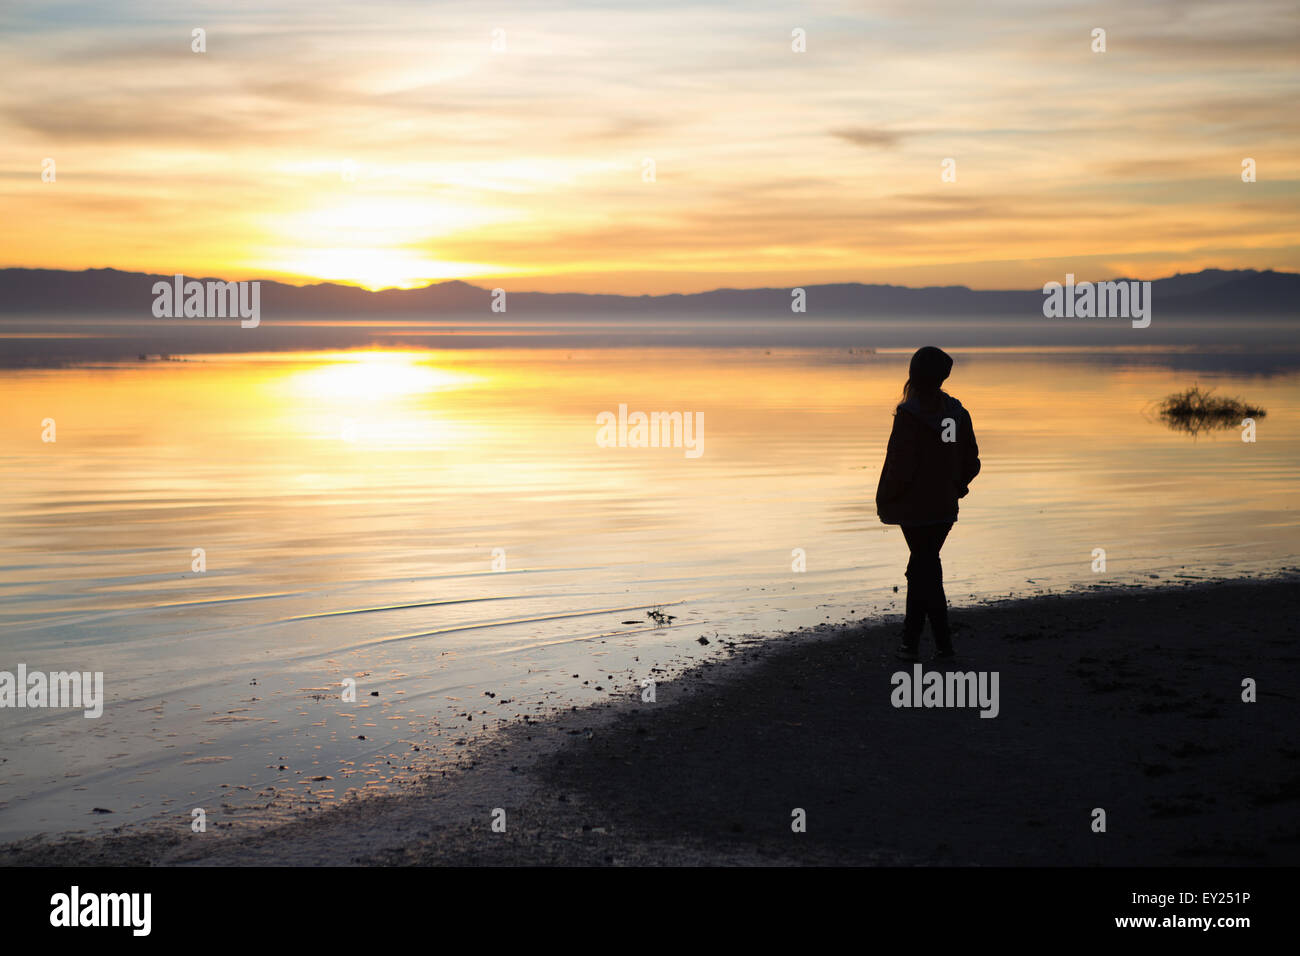 Young woman standing at water's edge, watching sunset, rear view - Stock Image